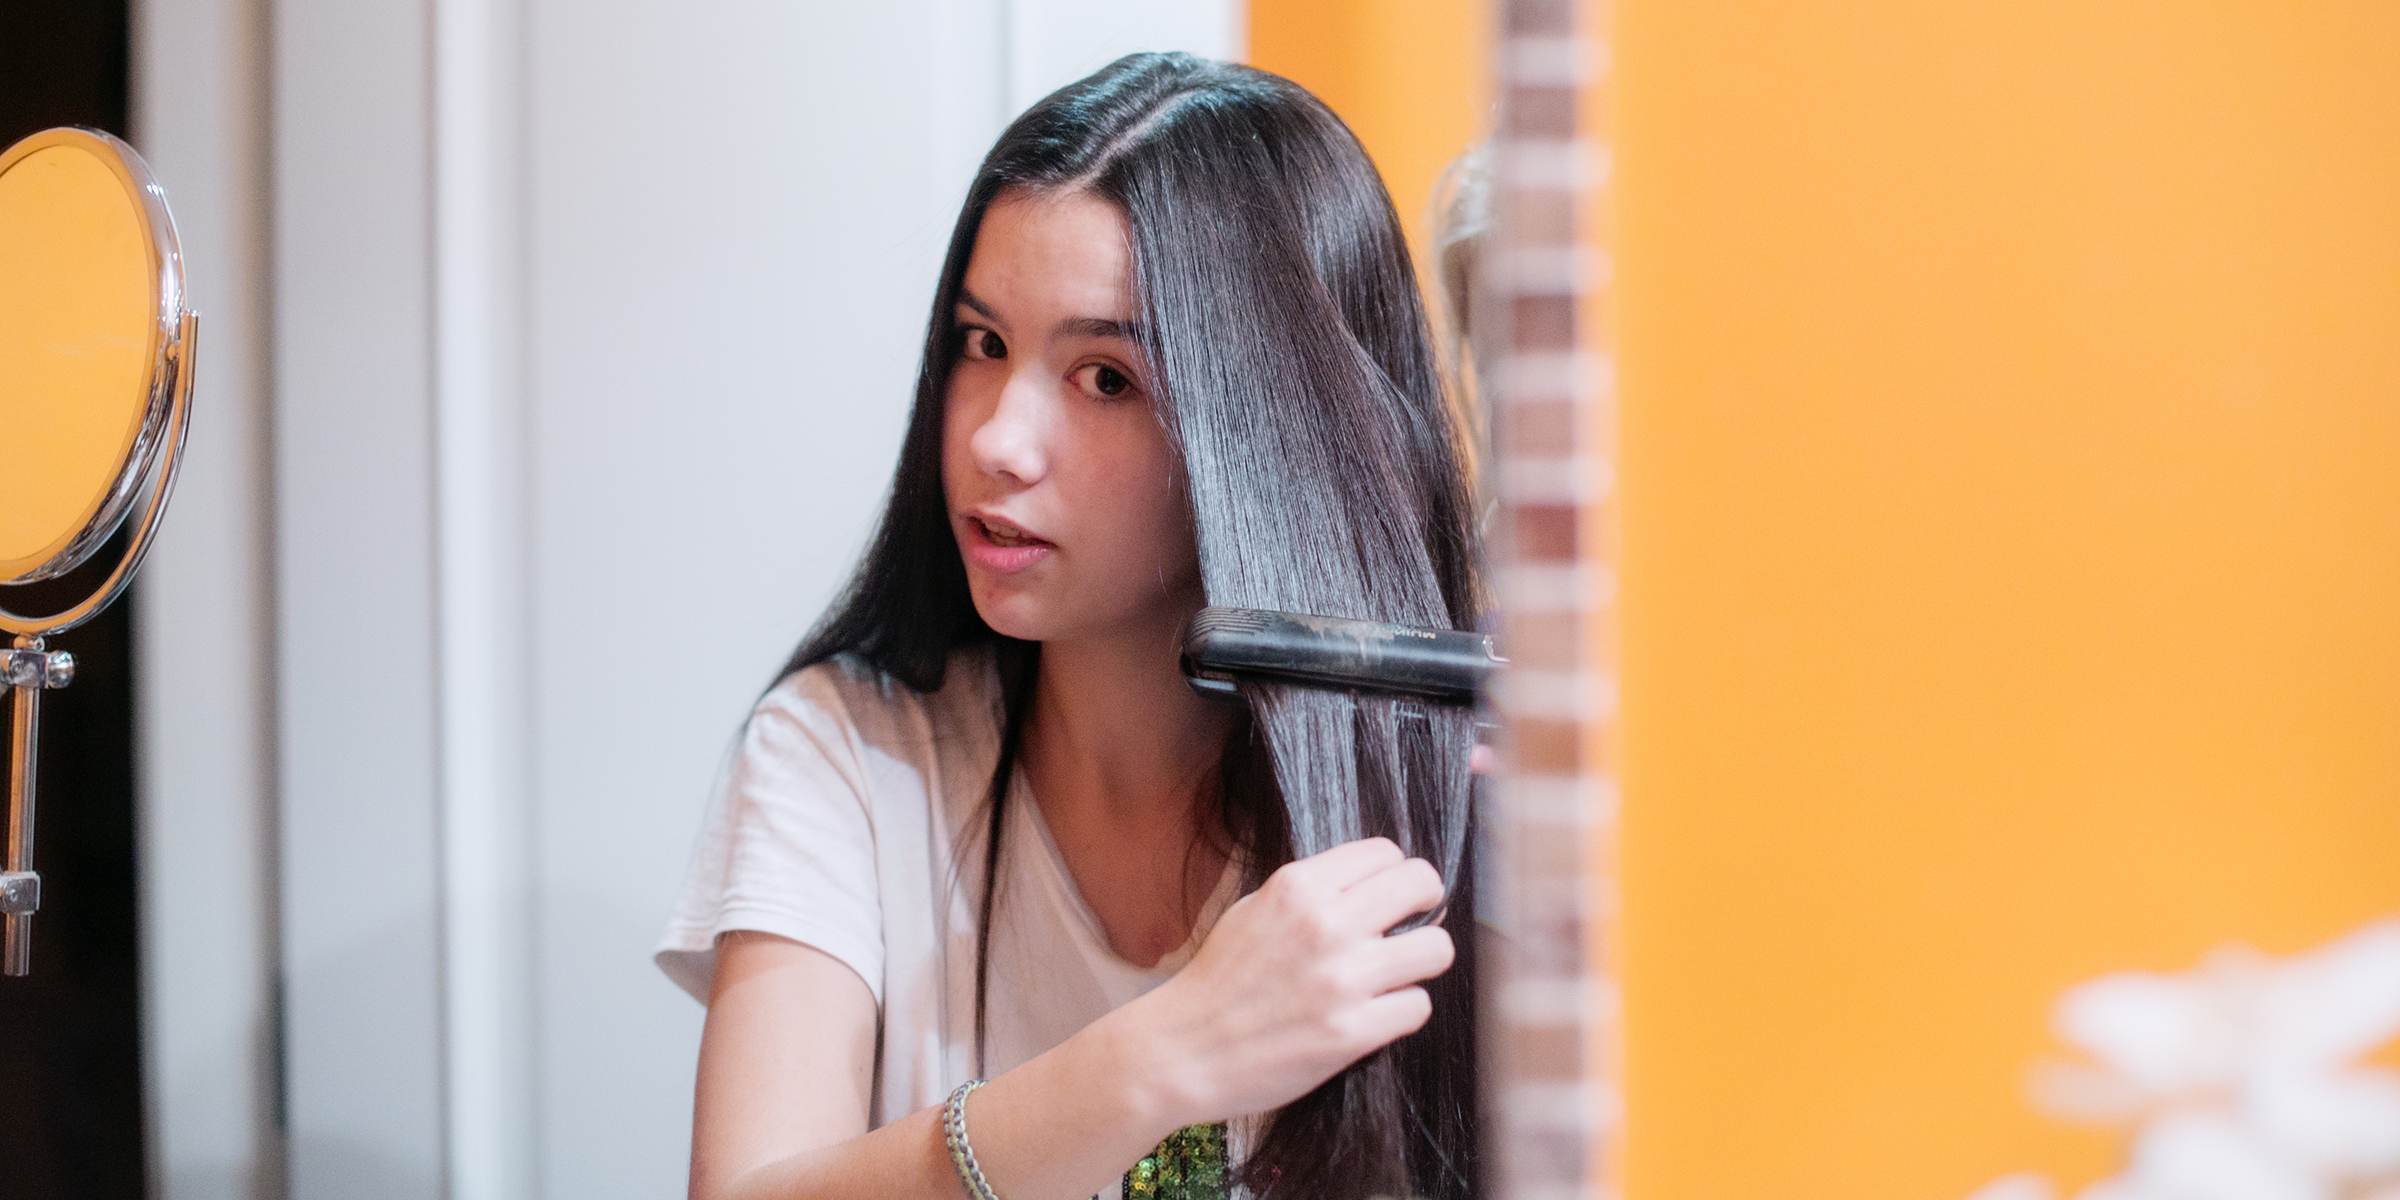 7 Things I Wish I Knew Before Permanently Straightening My Hair